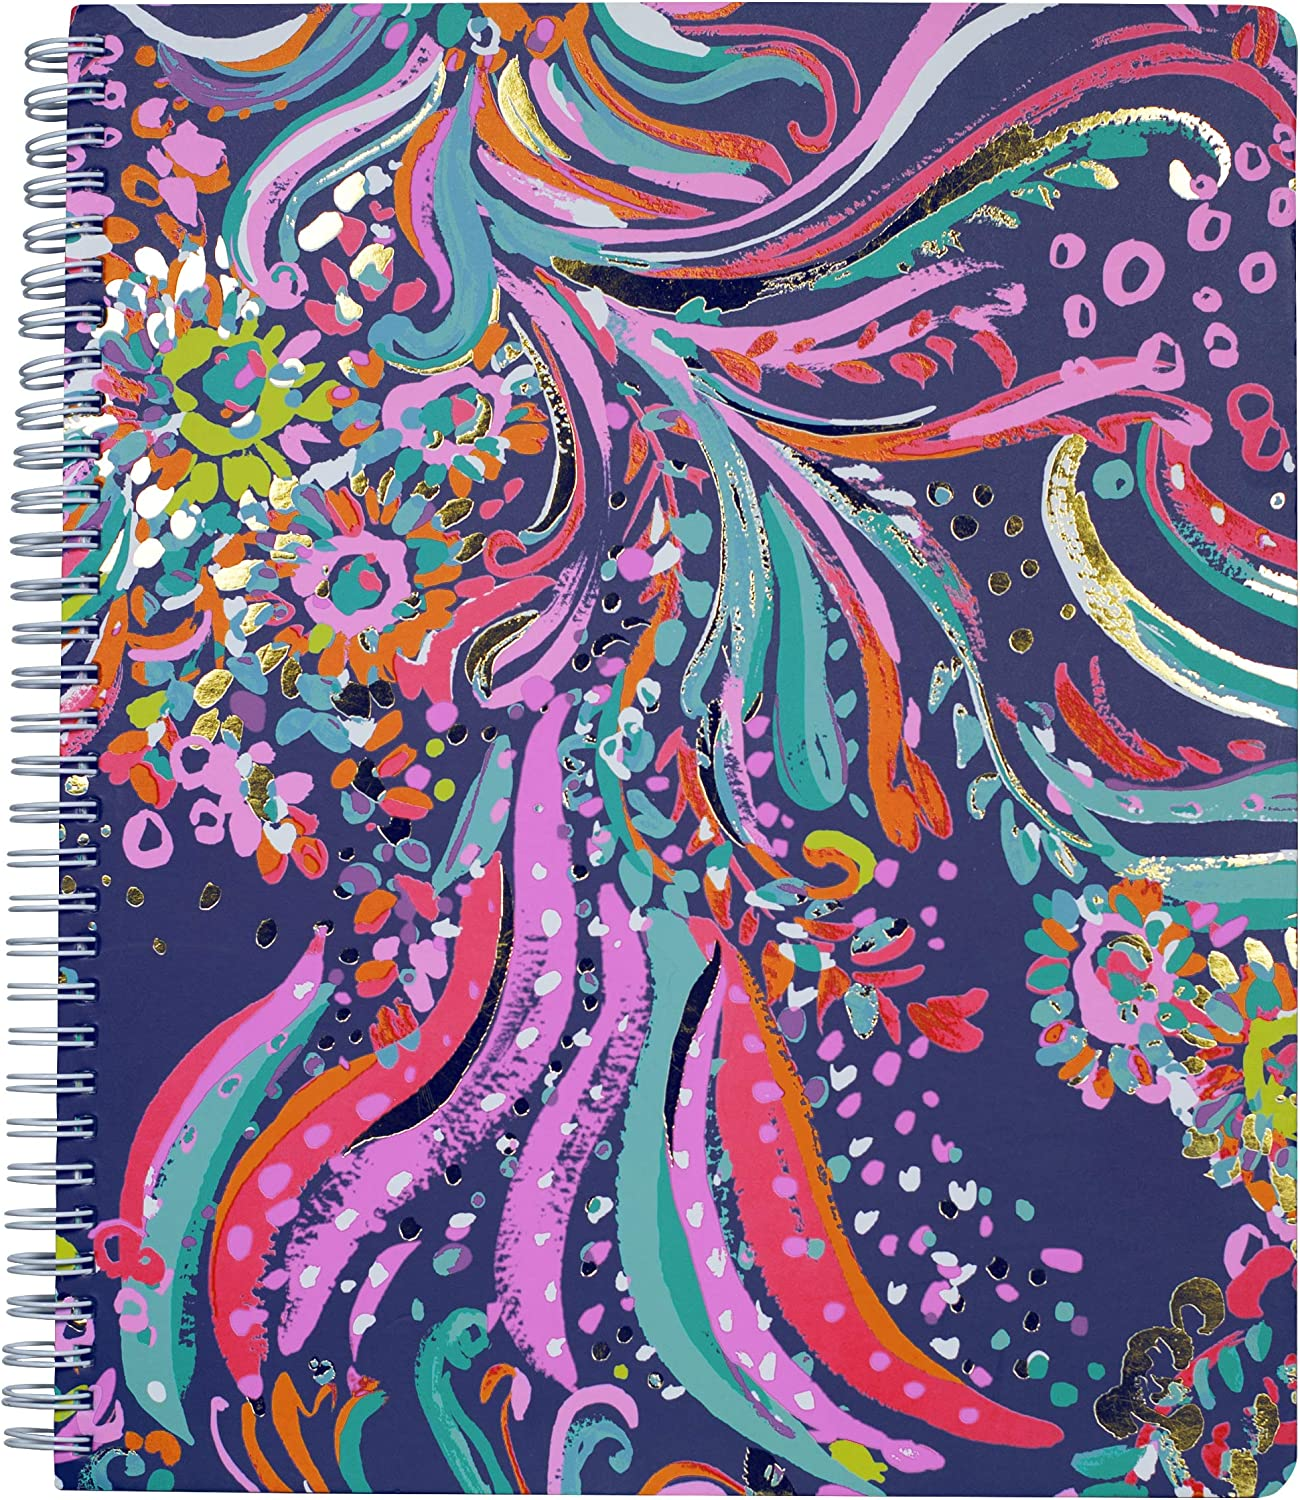 Lilly Pulitzer Women's Large College Ruled Notebook with 160 pages (Beach Loot)